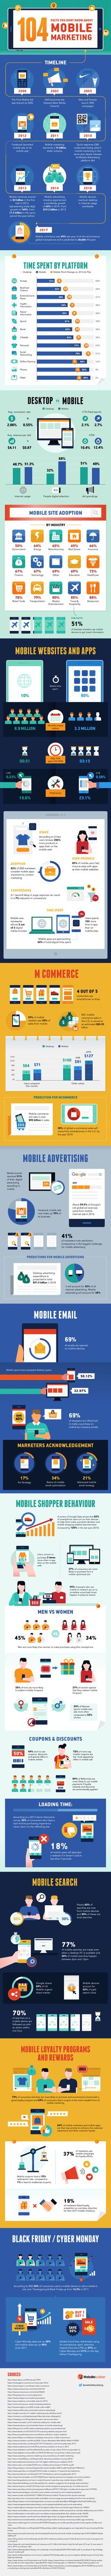 Gain new insights into mobile marketing with these 104 facts, stats, and other data about this marketing channel - from loyalty programs to search, shopping behavior, and everything in between.